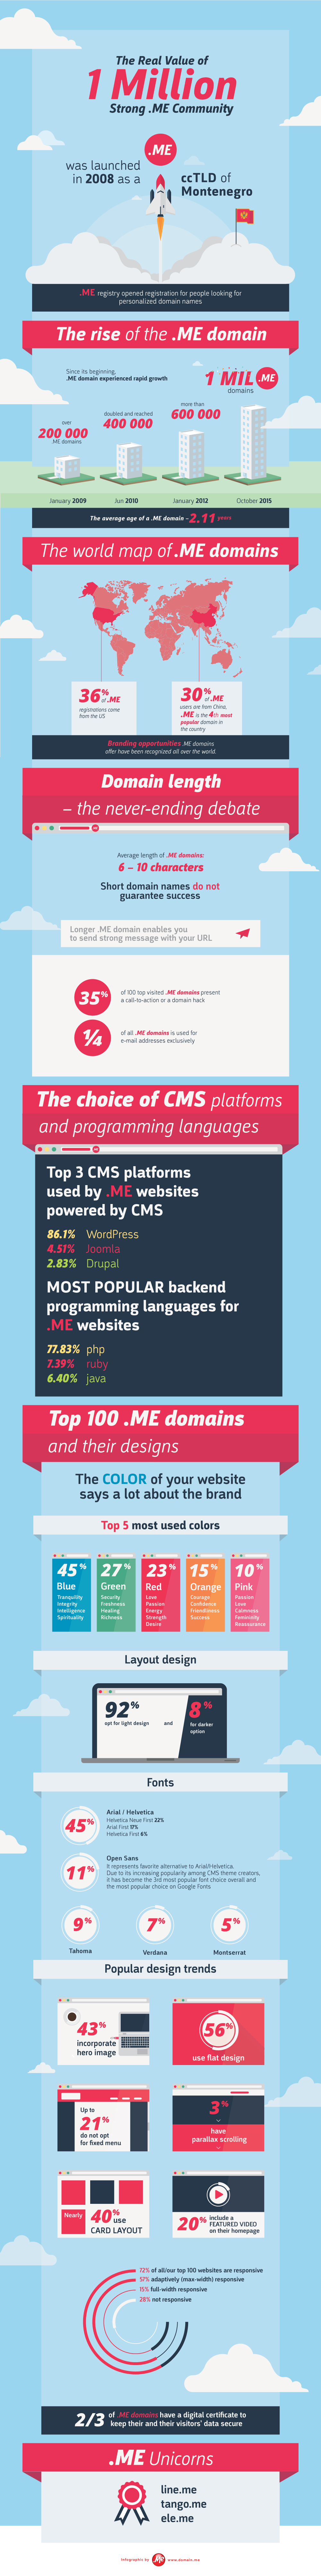 .ME infographic - one milliion domains